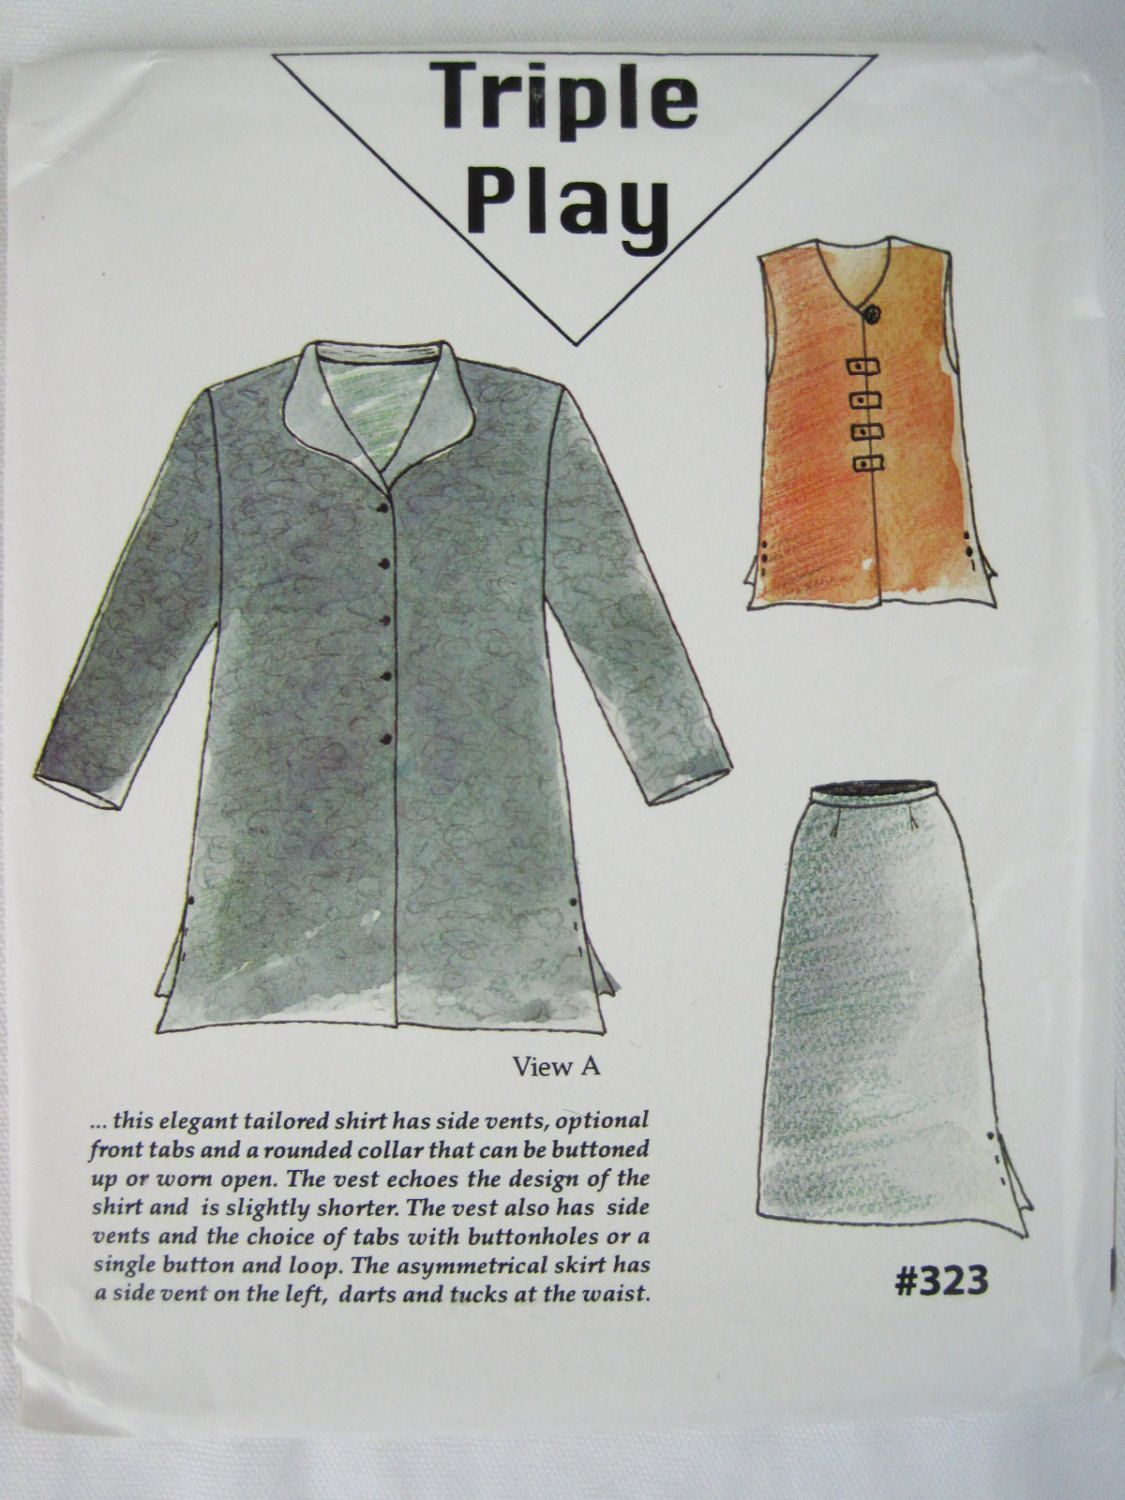 Triple Play Tailored Shirt Vest And Asymmetrical Skirt Sewing